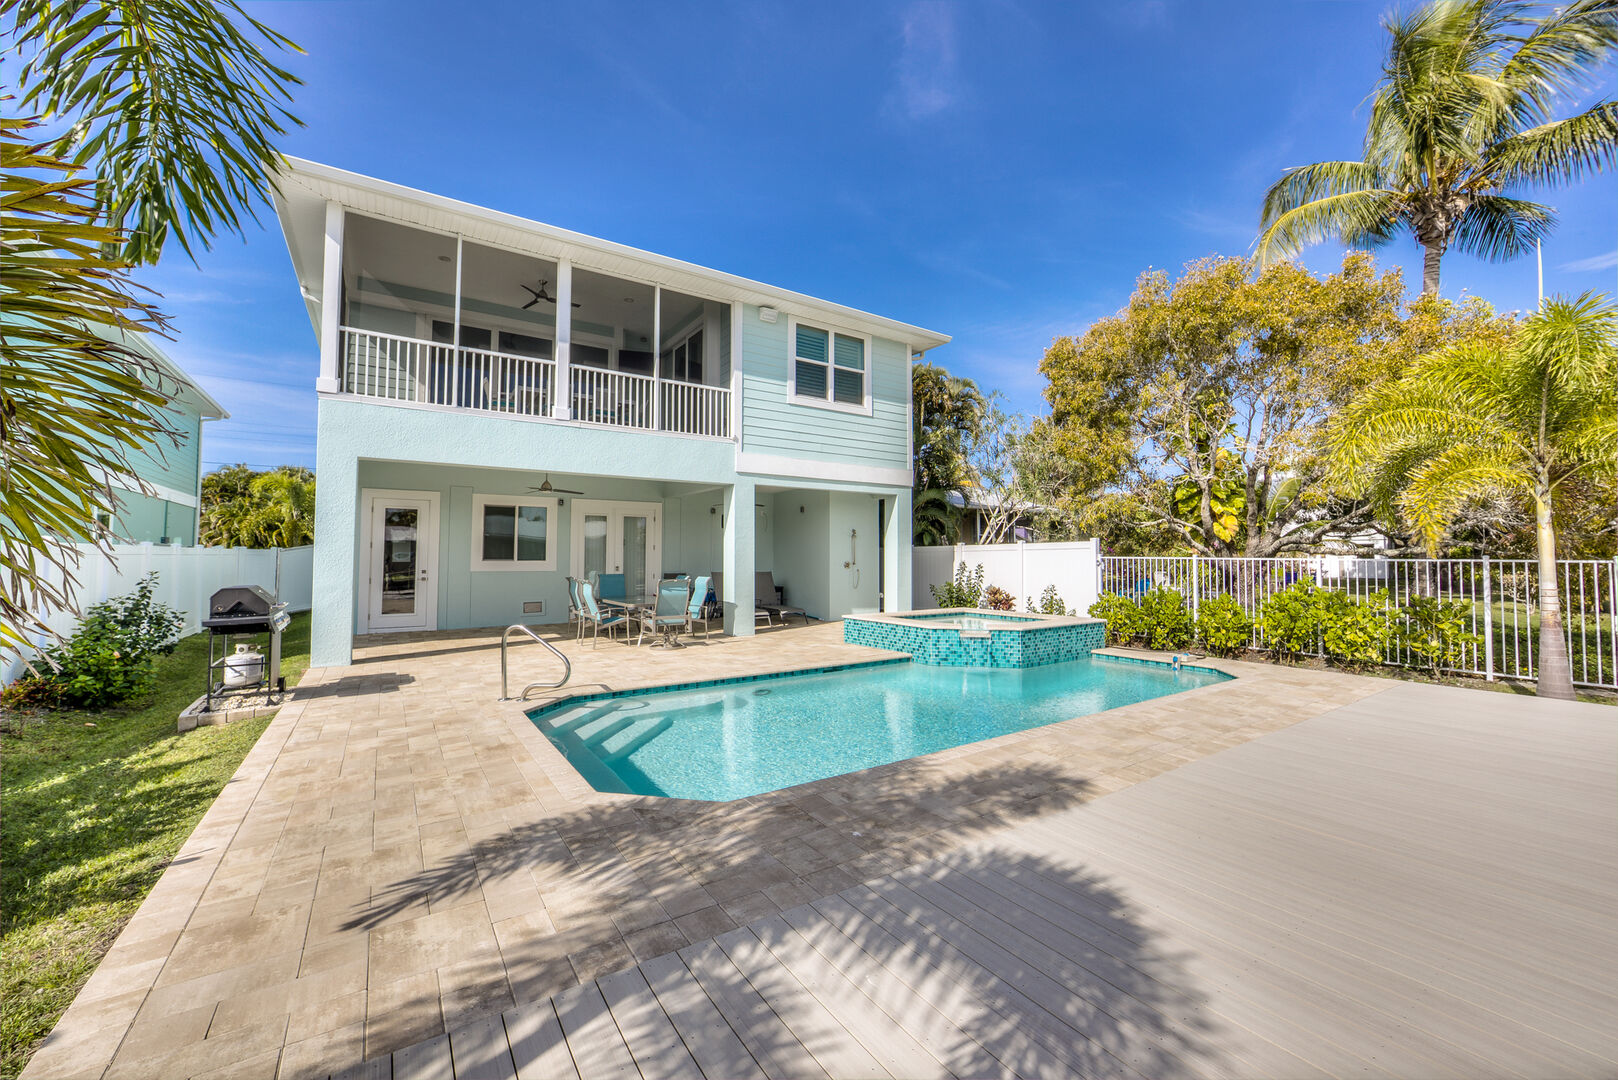 Rear Exterior and Pool at Vacation Home Rental In Fort Myers Beach Florida